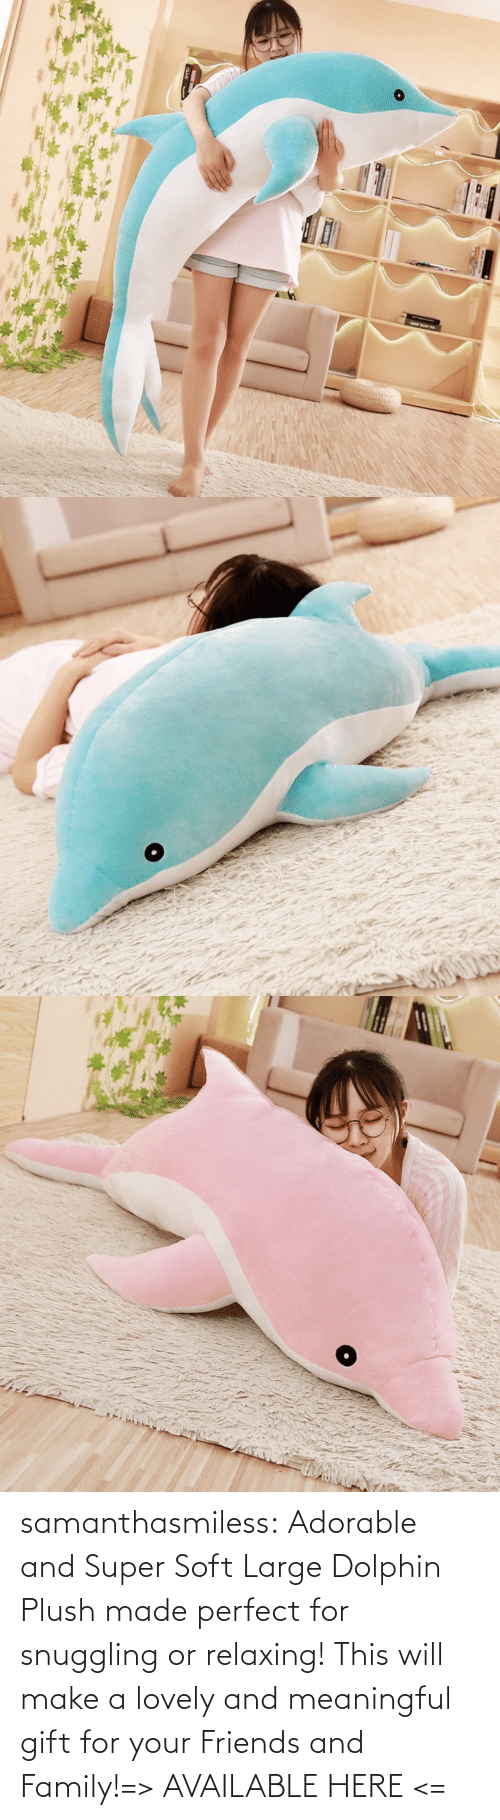 super: samanthasmiless:  Adorable and Super Soft Large Dolphin Plush made perfect for snuggling or relaxing! This will make a lovely and meaningful gift for your Friends and Family!=> AVAILABLE HERE <=